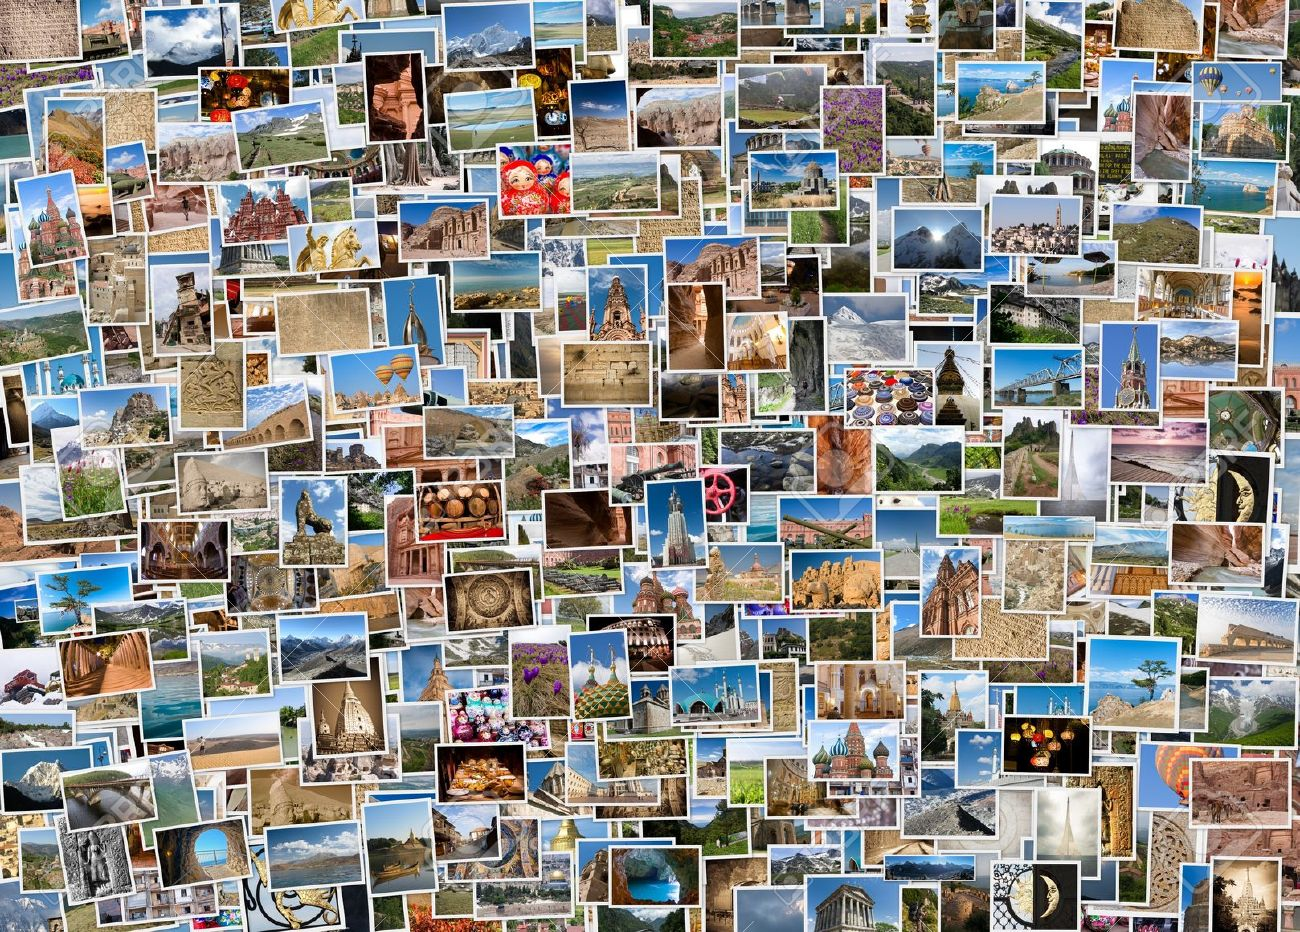 Collage Fotos A Collage Of Travel Photos From Around The World